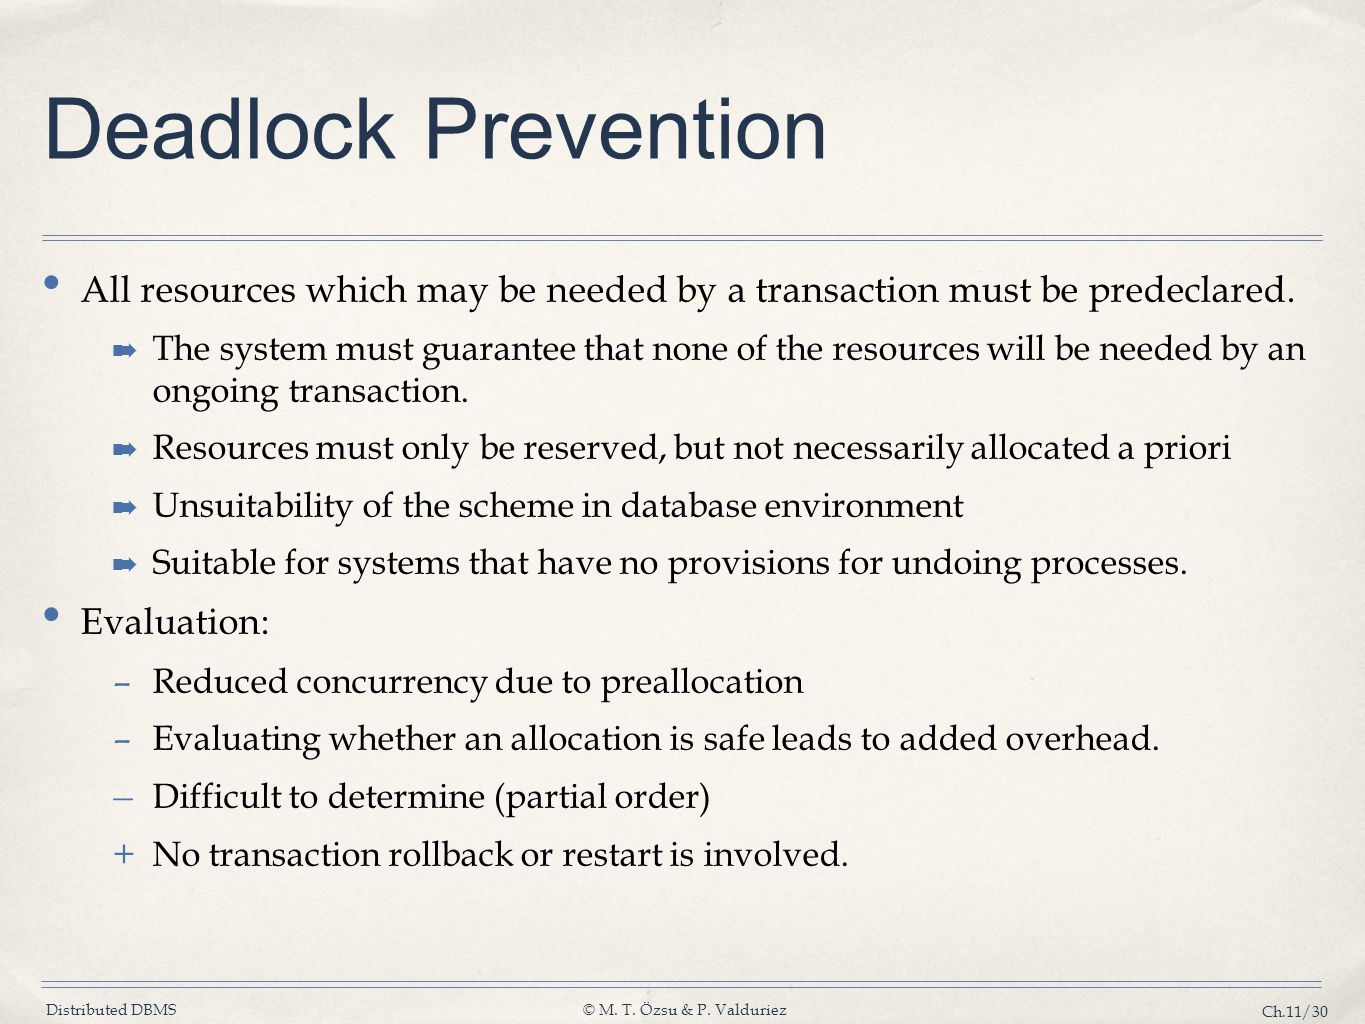 Distributed DBMS© M. T. Özsu & P. Valduriez Ch.11/30 Deadlock Prevention All resources which may be needed by a transaction must be predeclared. ➡ The